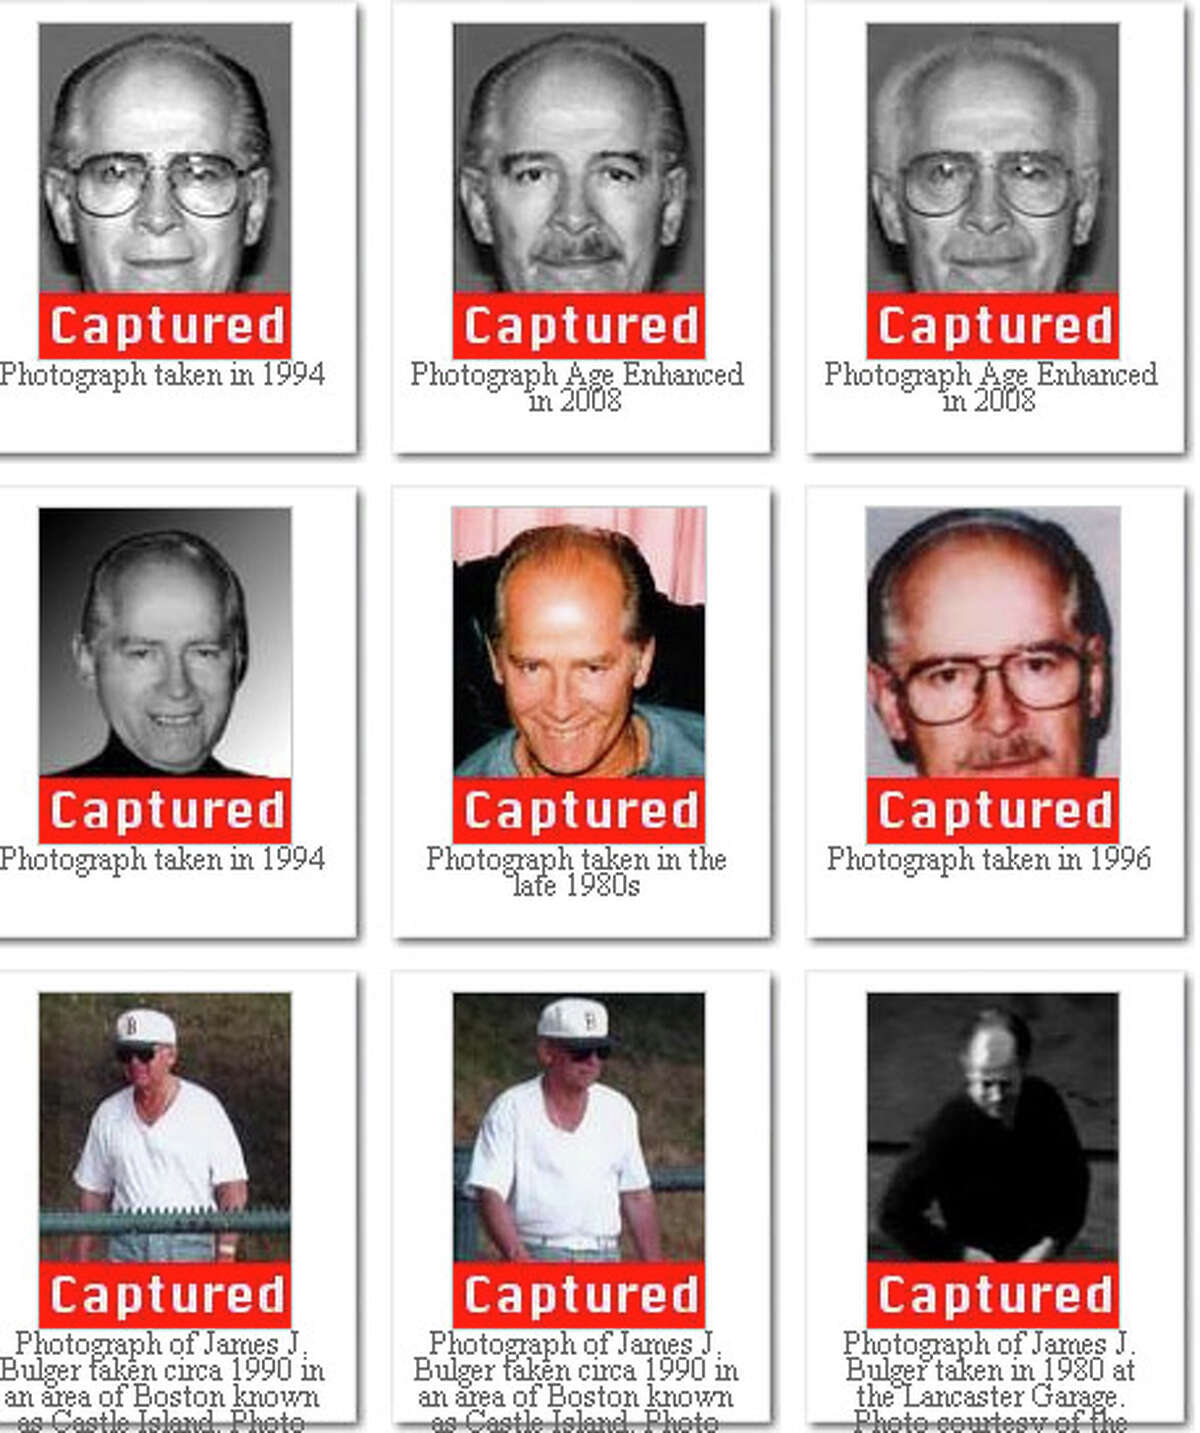 This Federal Bureau of Investigation image shows Bulger at different ages.